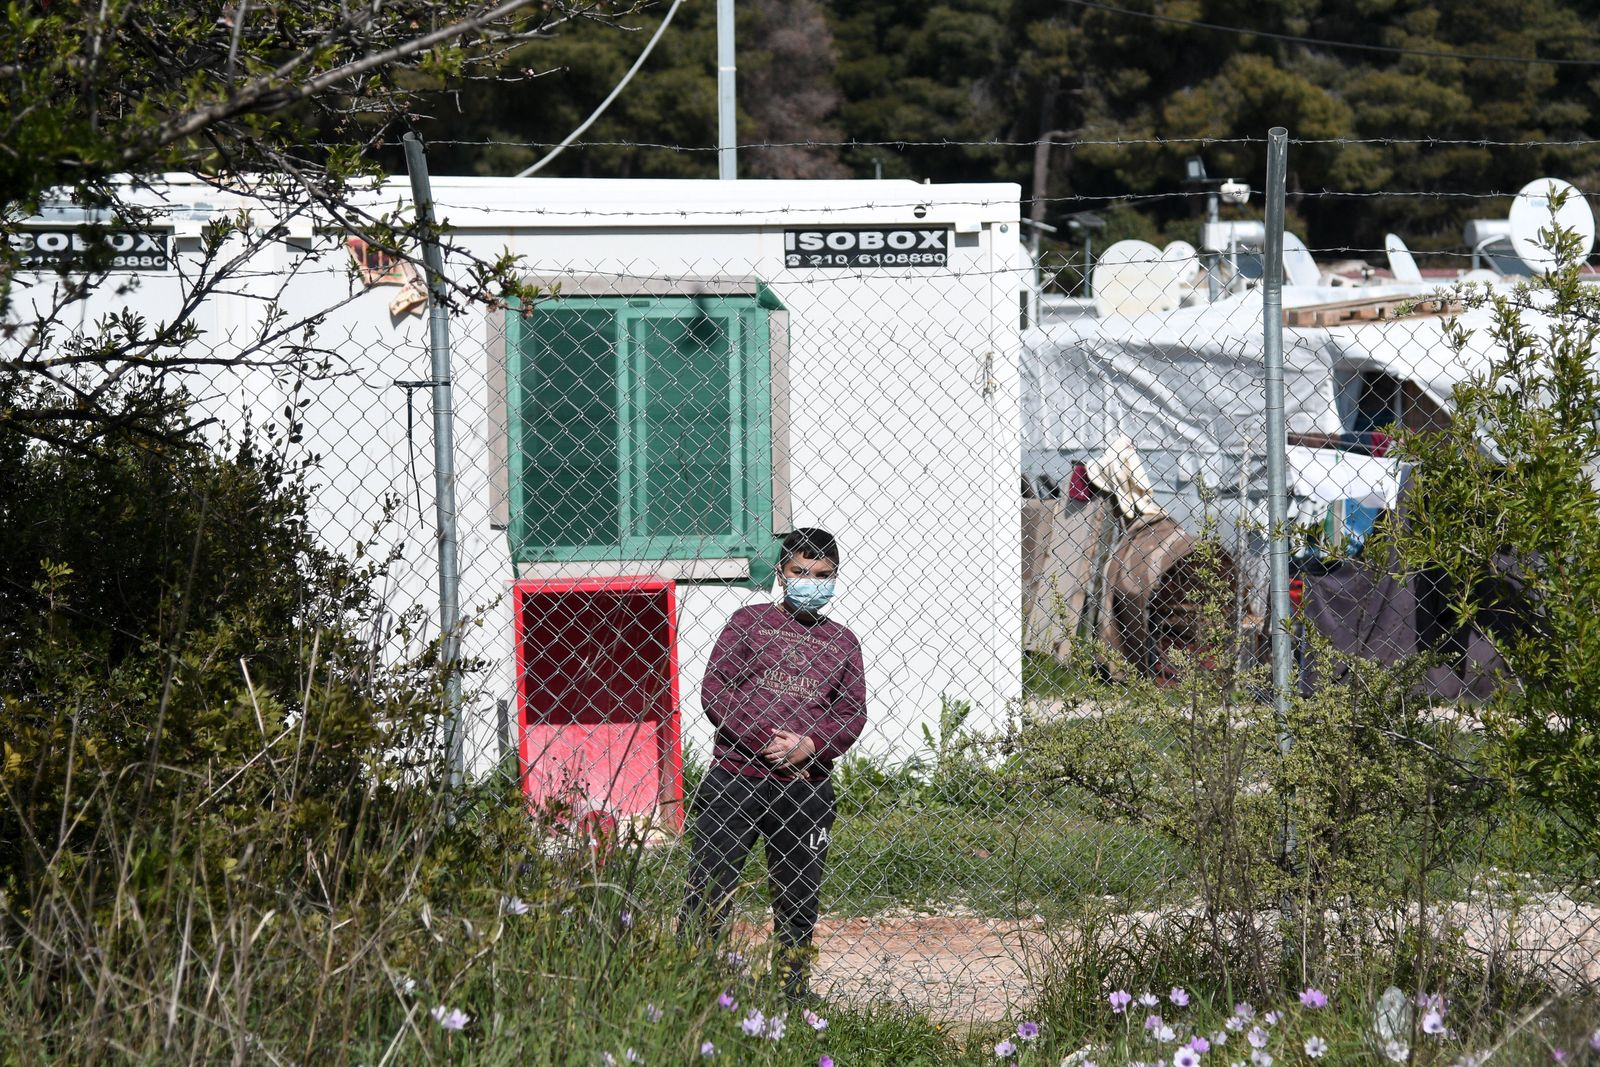 Greek health officials have placed a refugee and migrant camp northeast of the capital in quarantine after 20 of its res